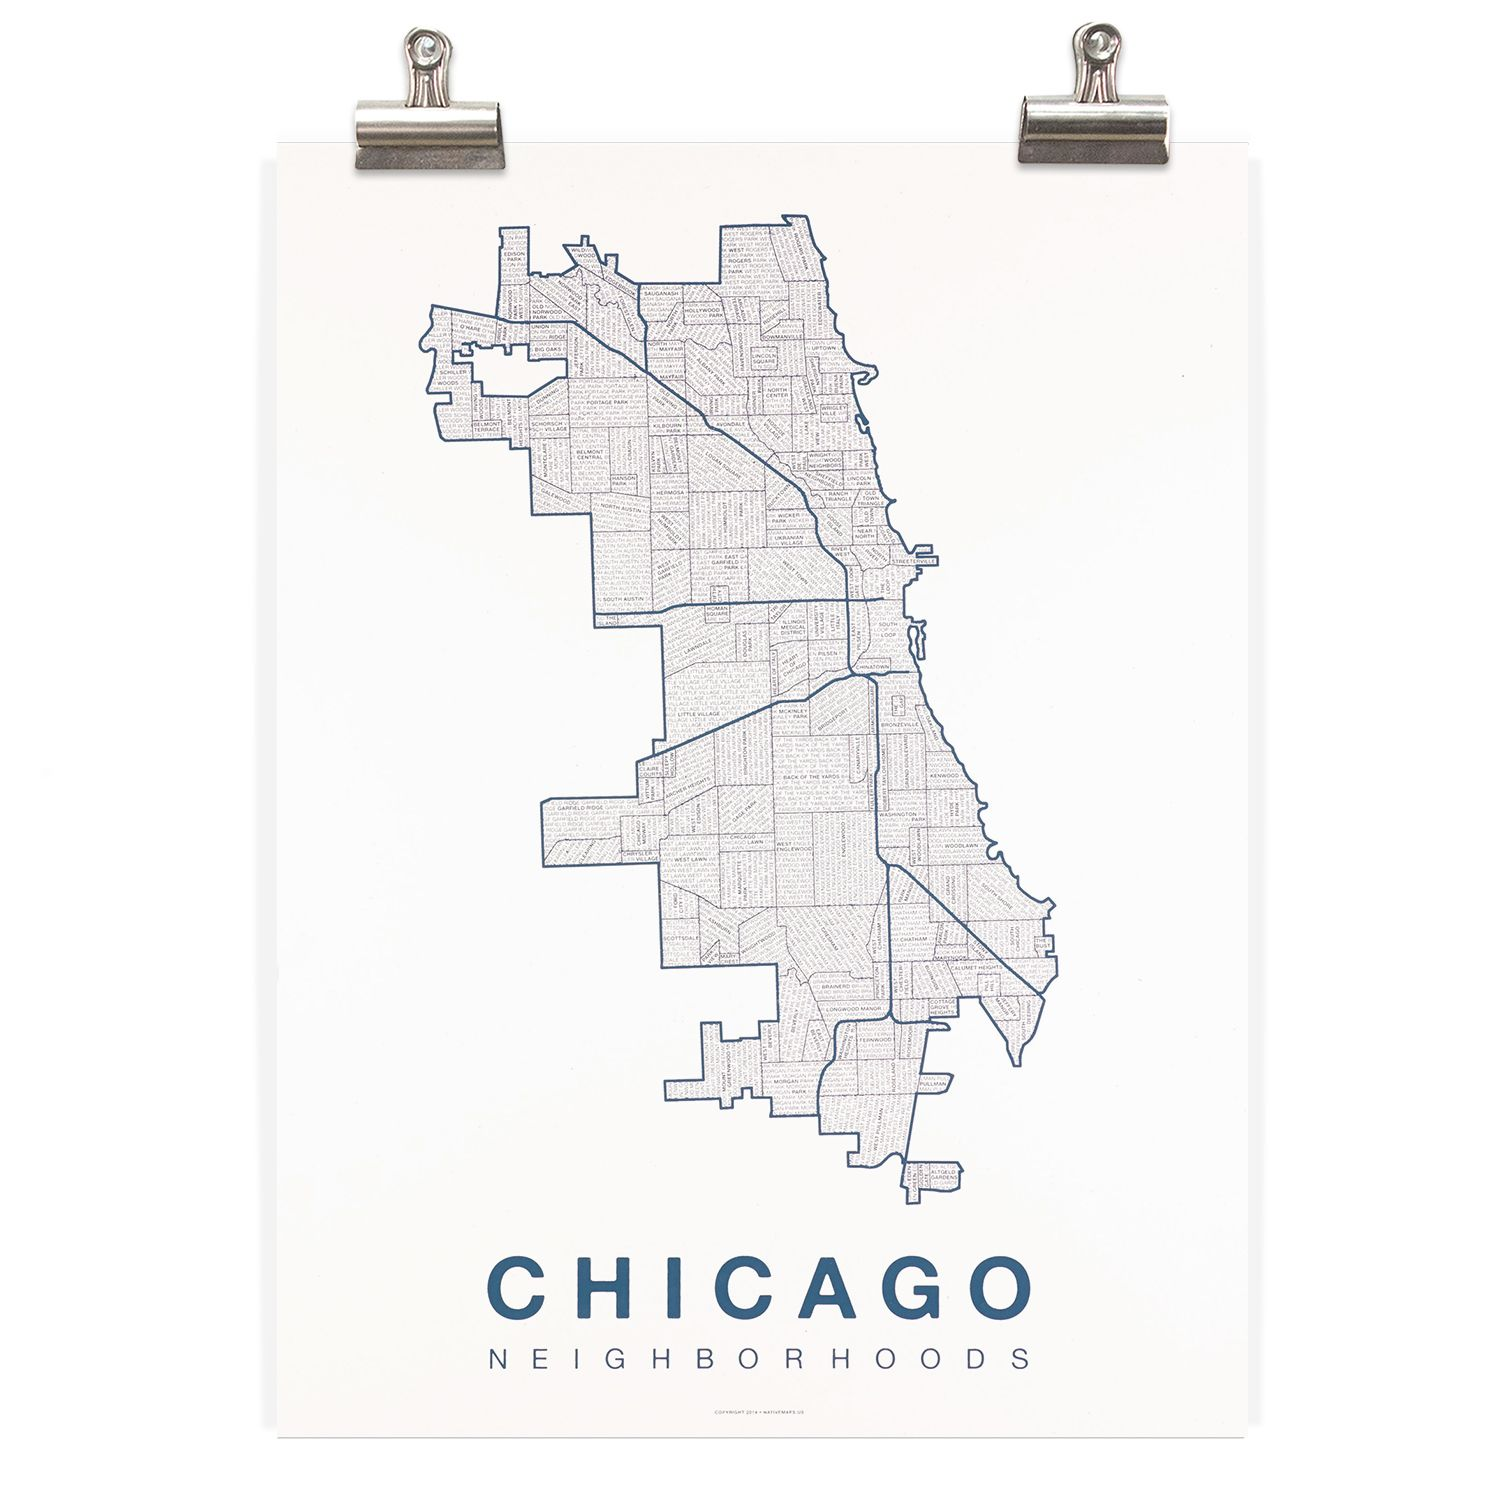 Pin by Mara Greenwald on • posters and prints • | Chicago ... Chicago Outline Map on